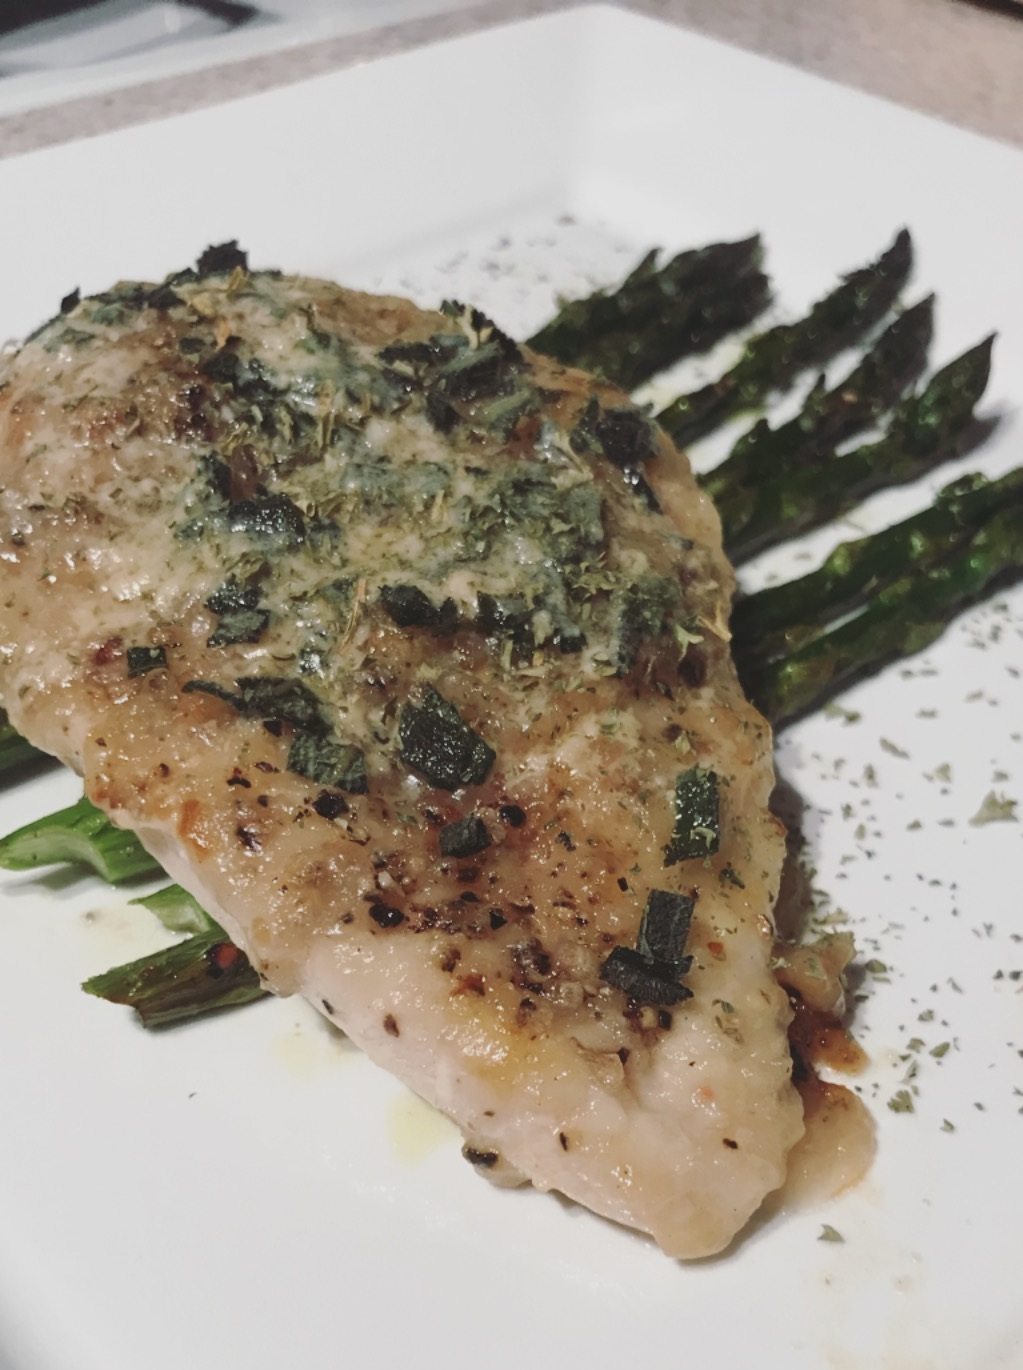 Creamy Dijon Chicken + Oven Roasted Asparagus - Tuesday Night Dinner!